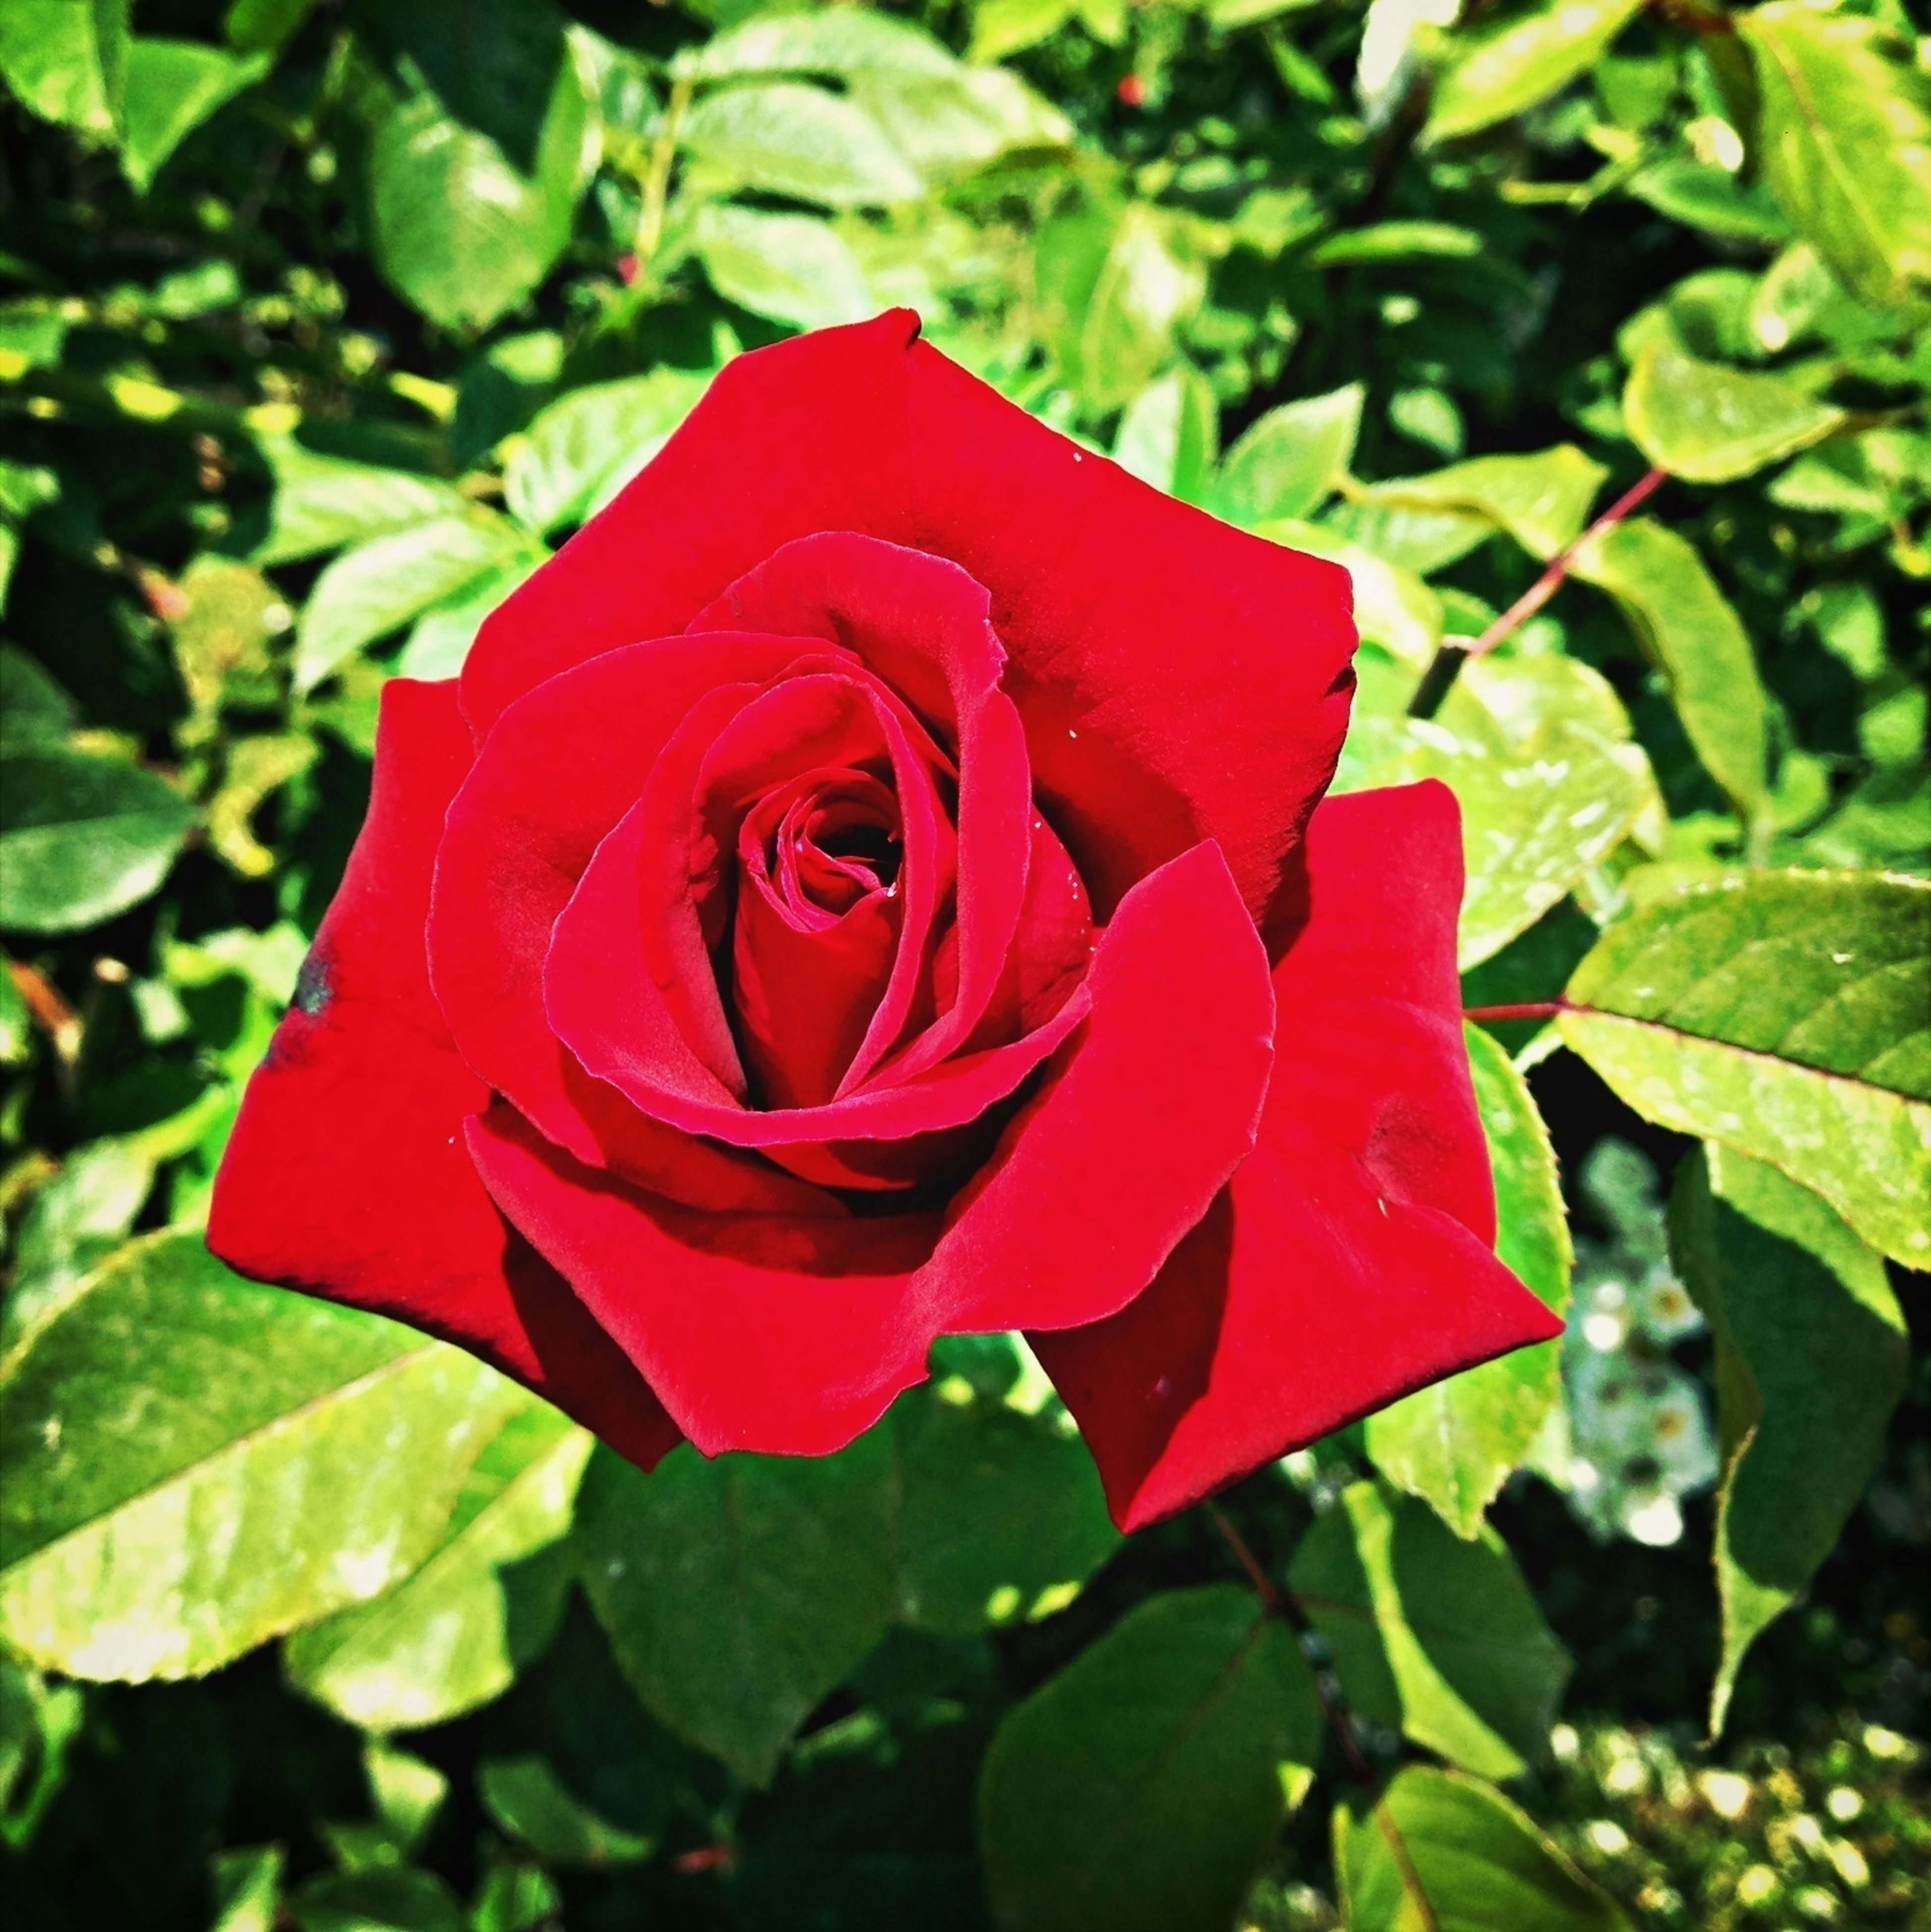 flower, petal, red, flower head, freshness, fragility, growth, beauty in nature, single flower, leaf, rose - flower, close-up, blooming, nature, focus on foreground, plant, rose, in bloom, park - man made space, day